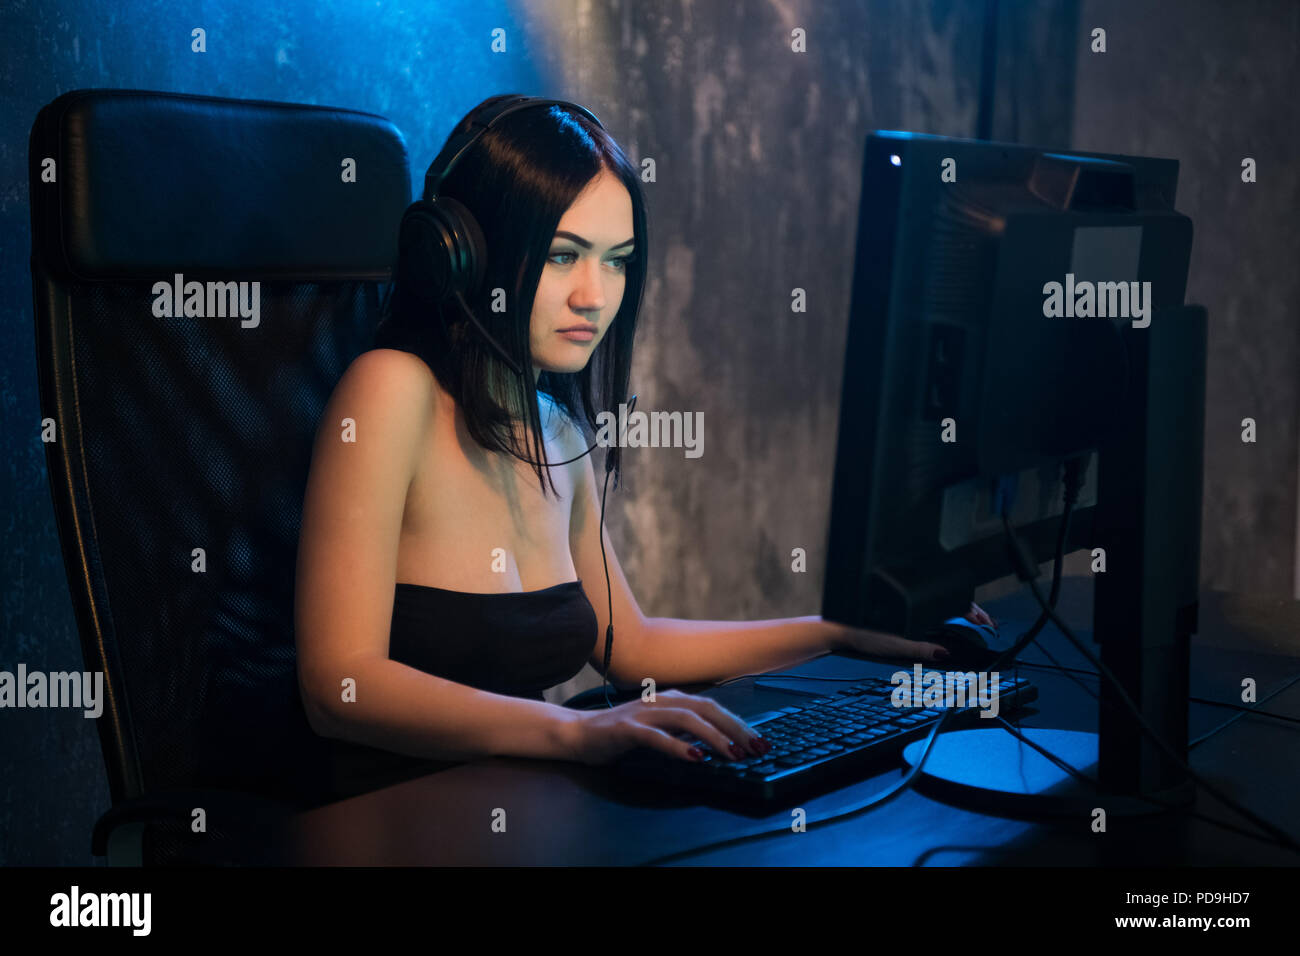 Young attractive woman playing video games on her computer wearing gaming headset. - Stock Image